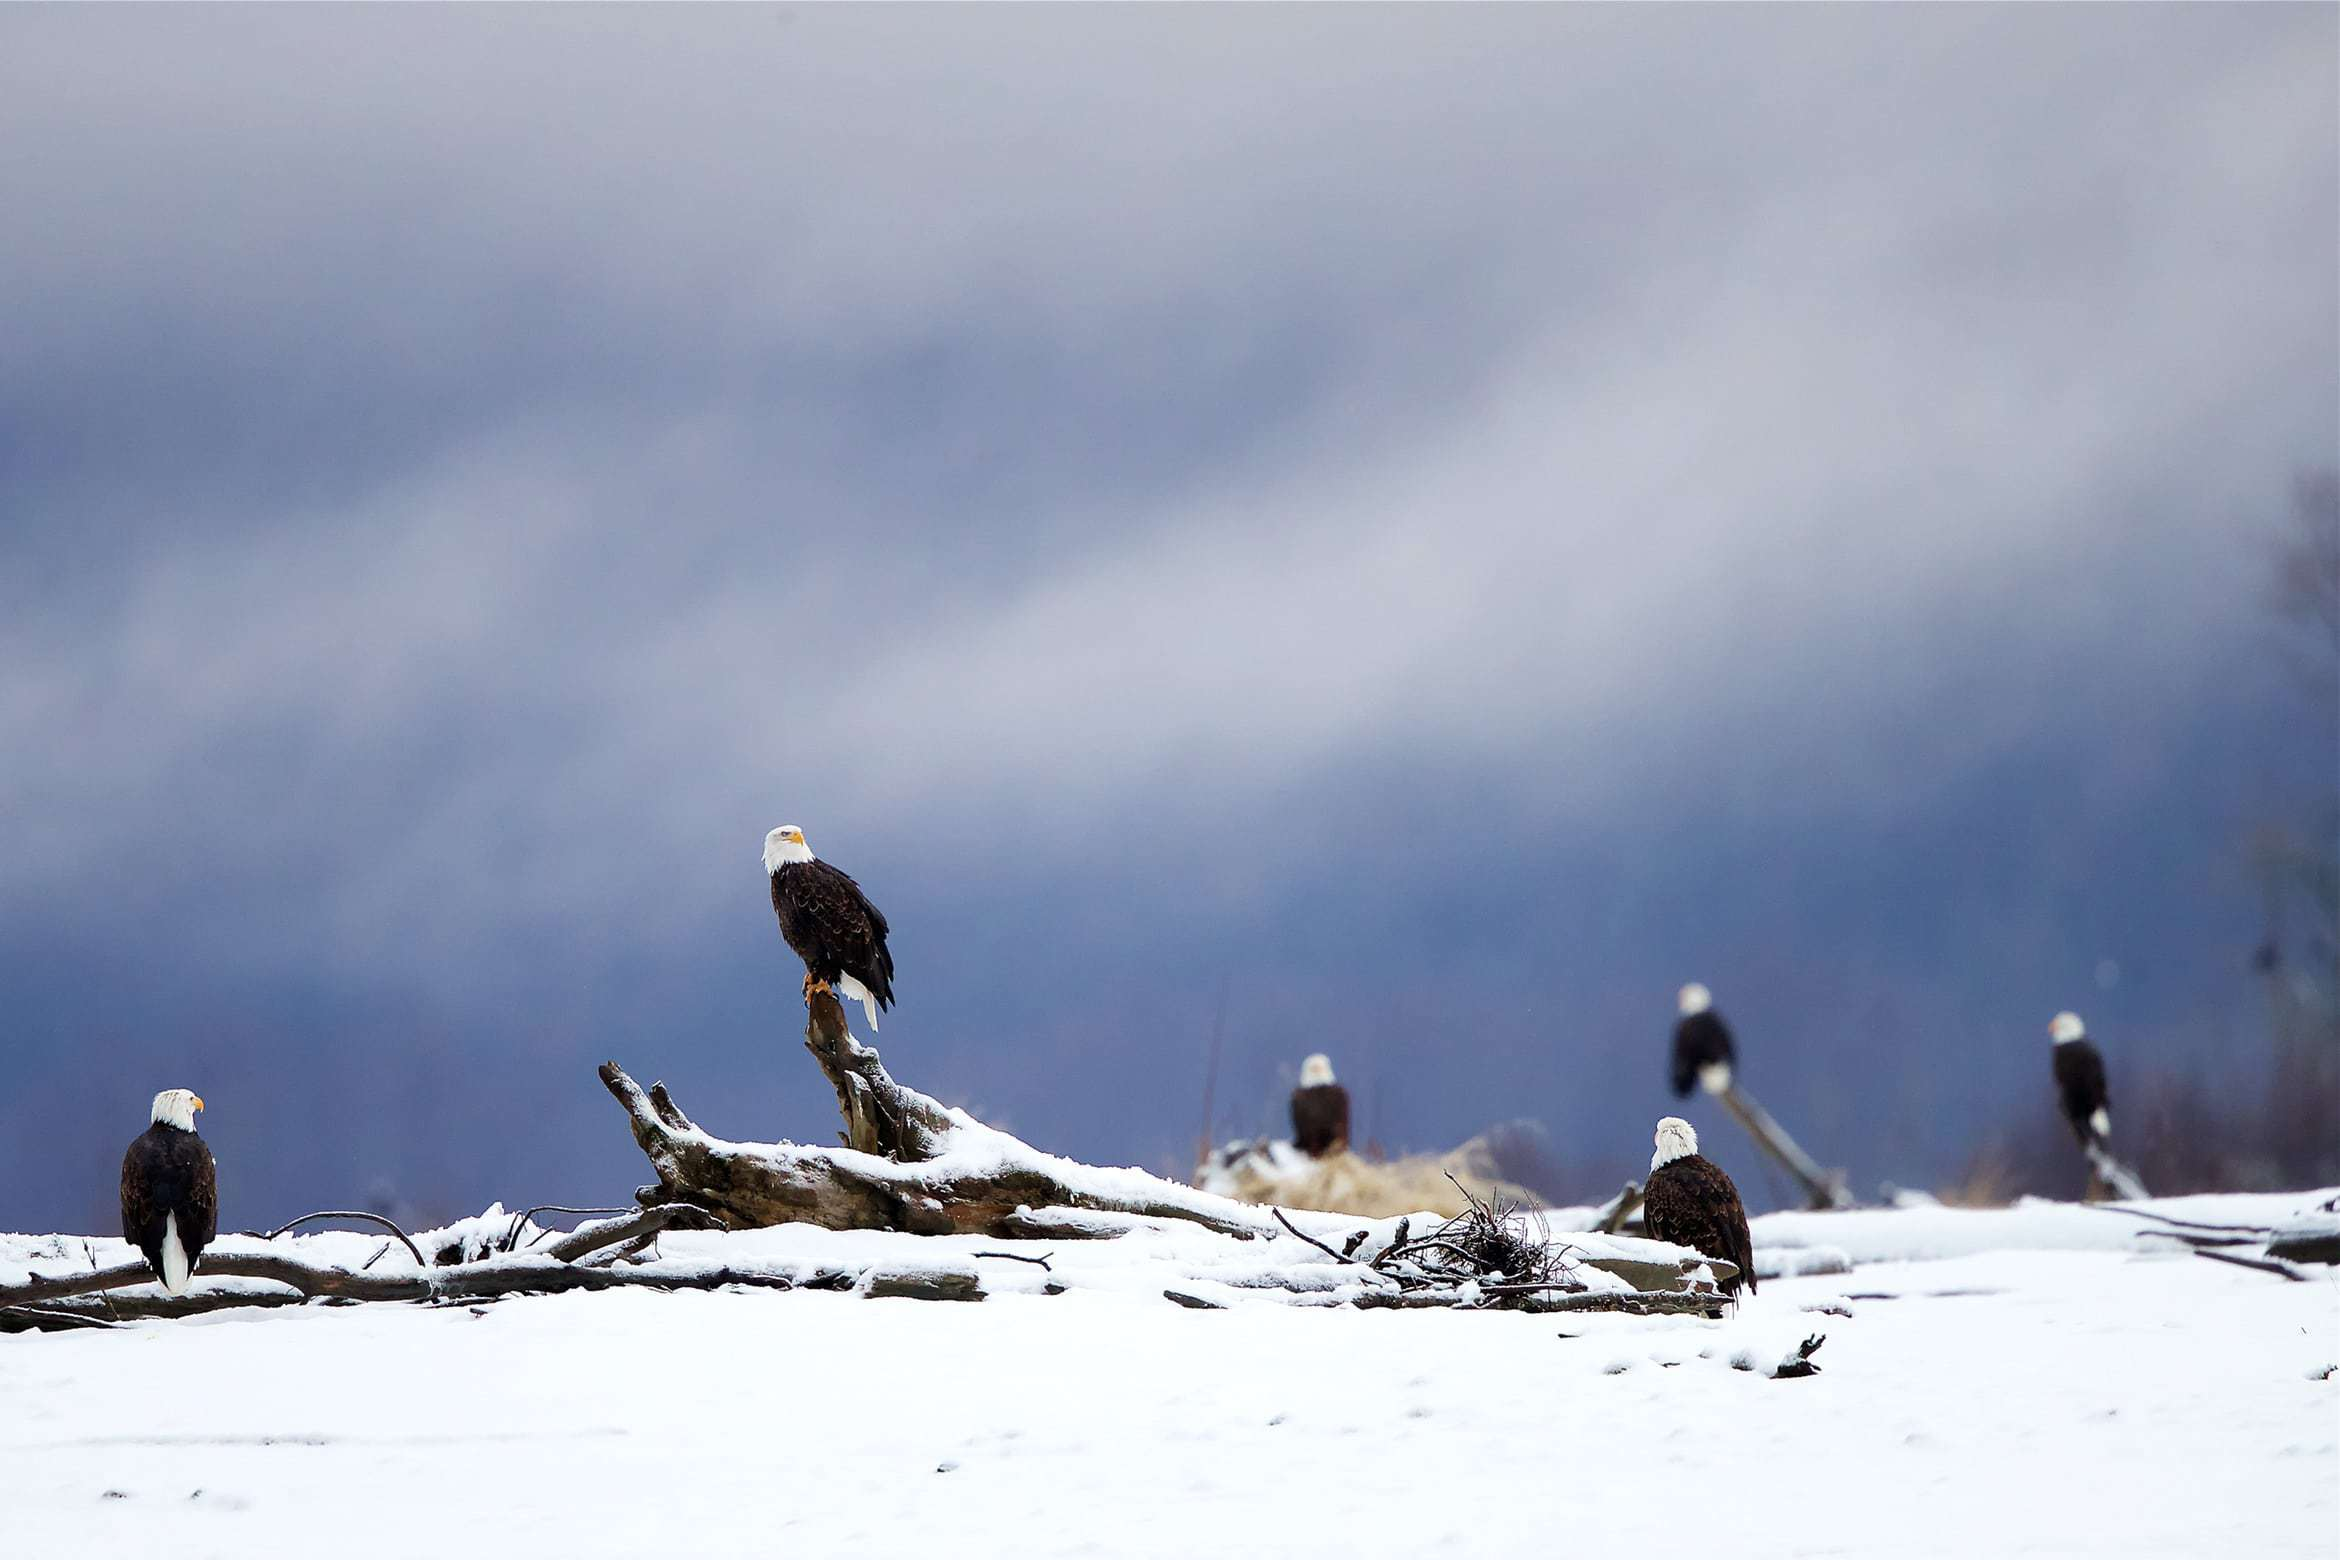 A Congregation Of Bald Eagles Photographed Within The Conservation Area Outside Of Haines Photographed During The NaturesLens Bald Eagles Of Alaska Photography Holiday